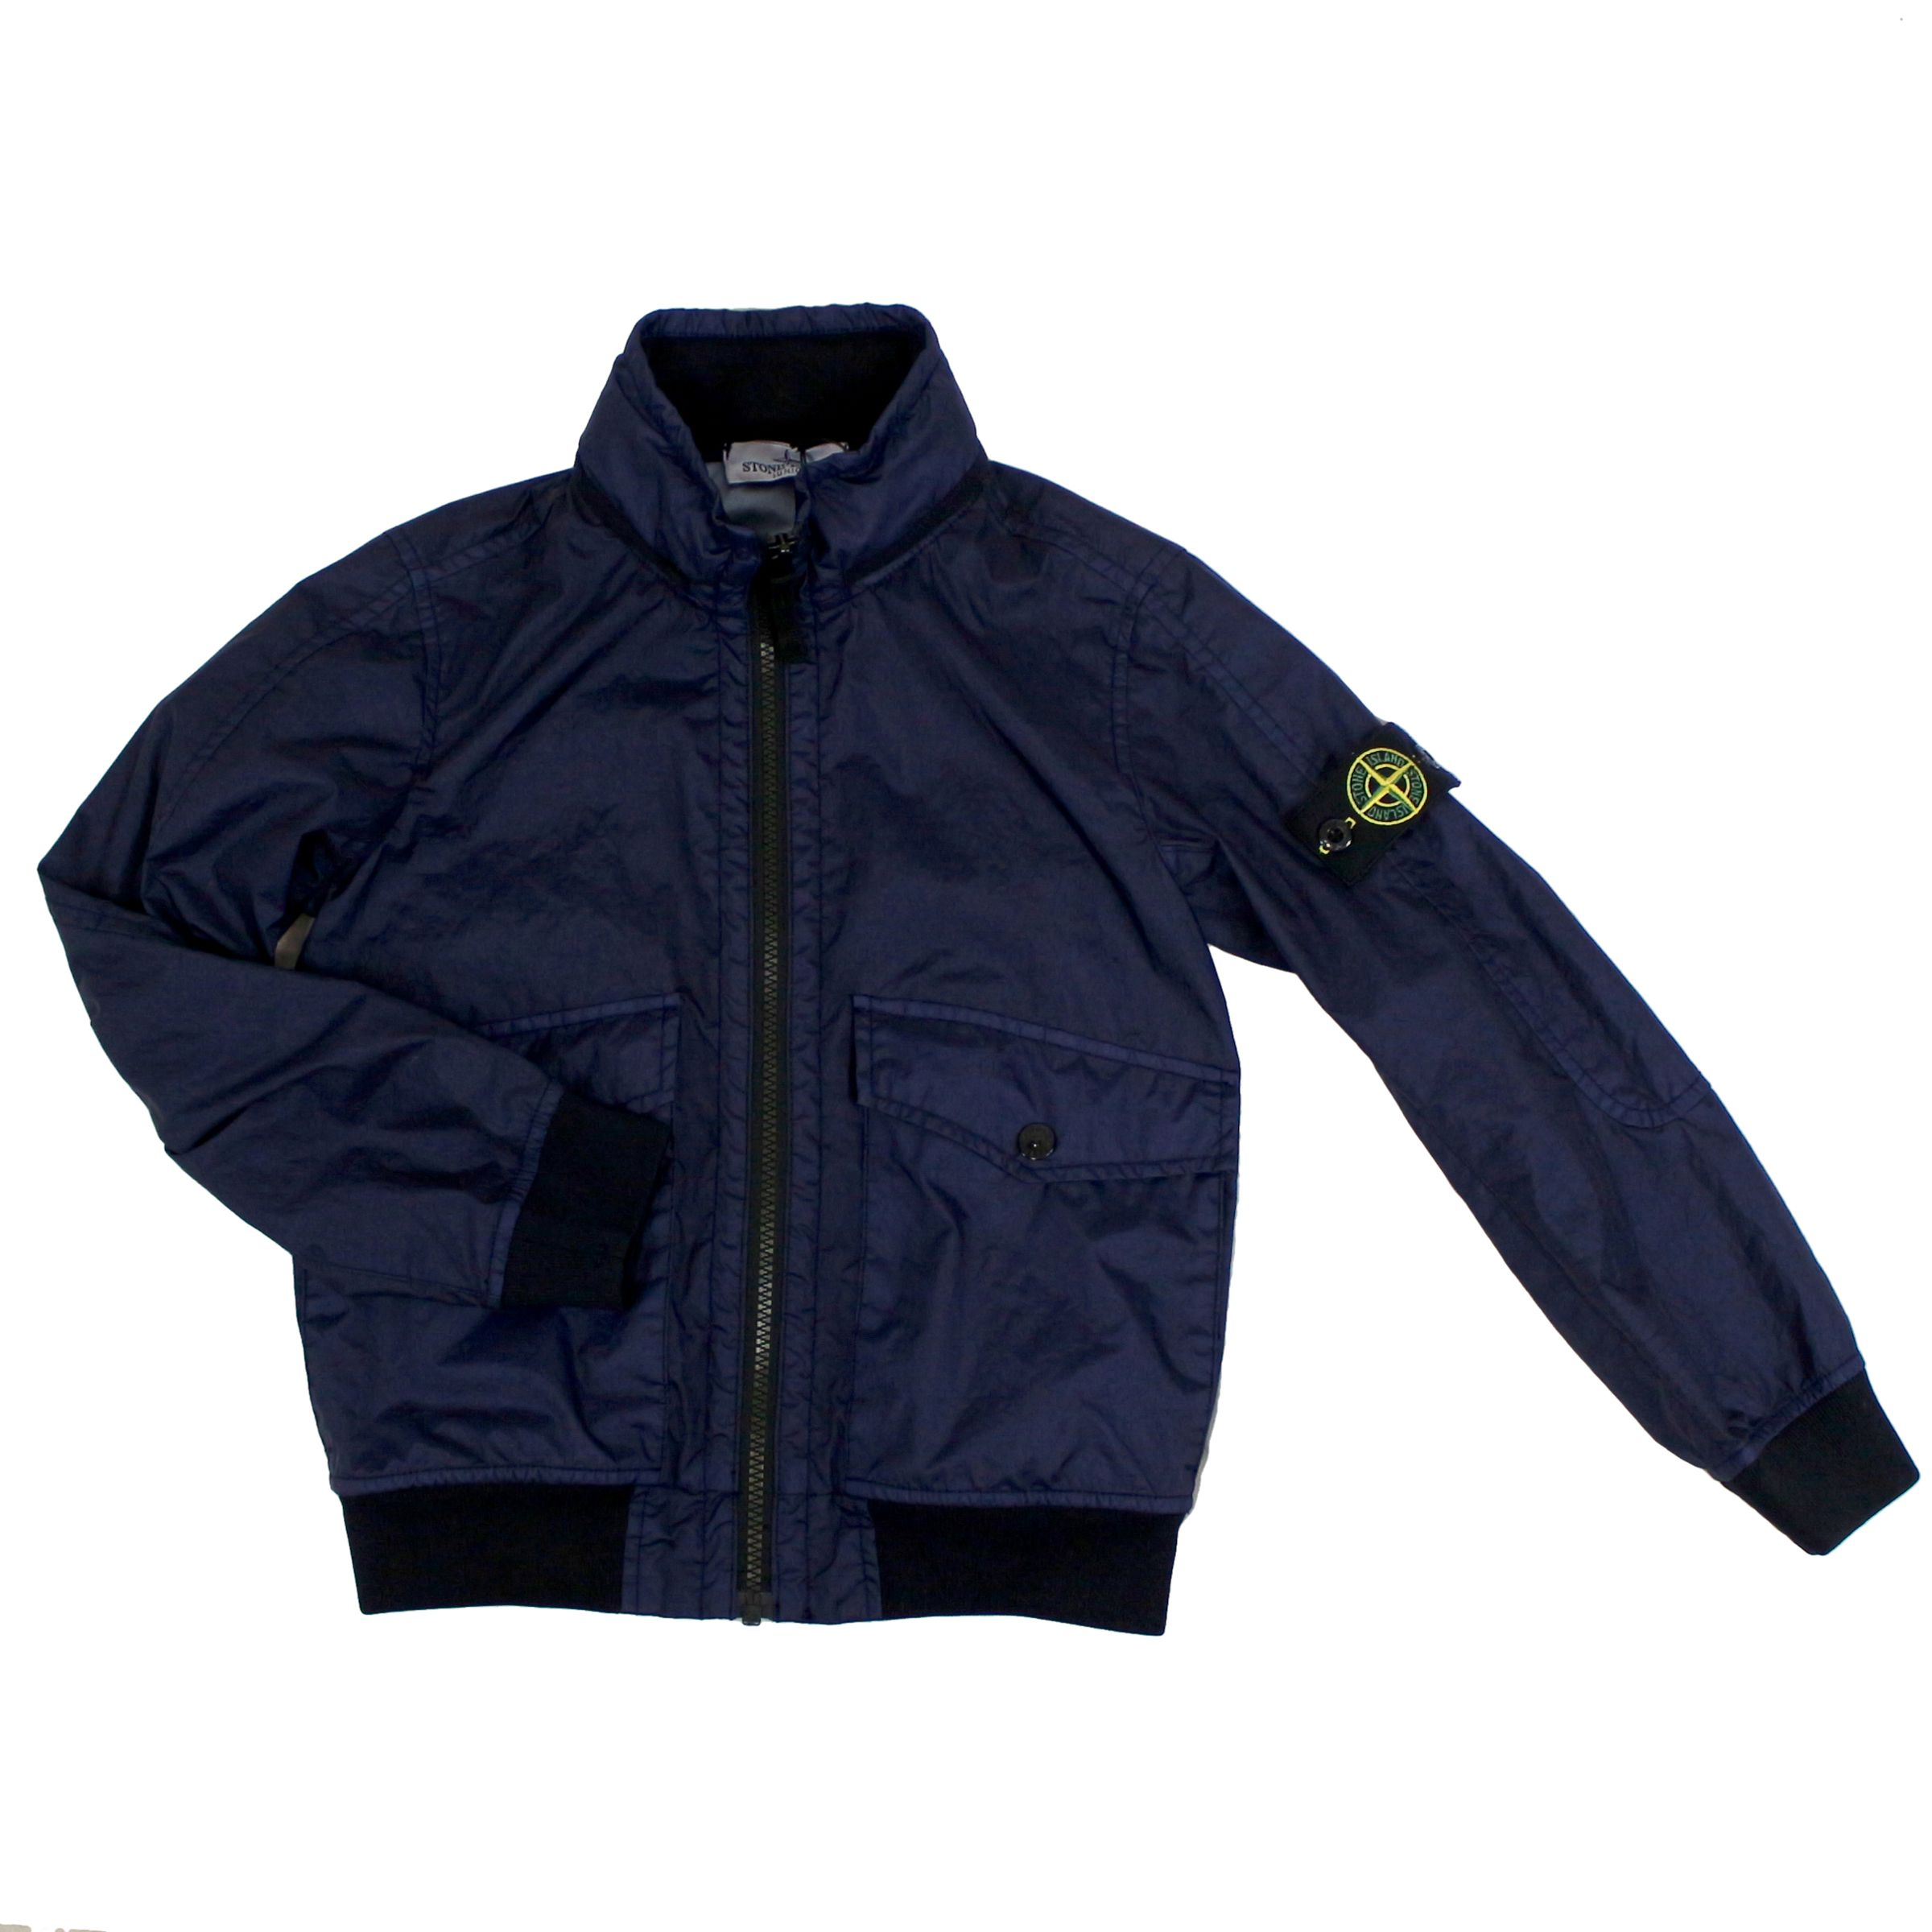 huge discount 4c044 0a663 jacket with front pockets